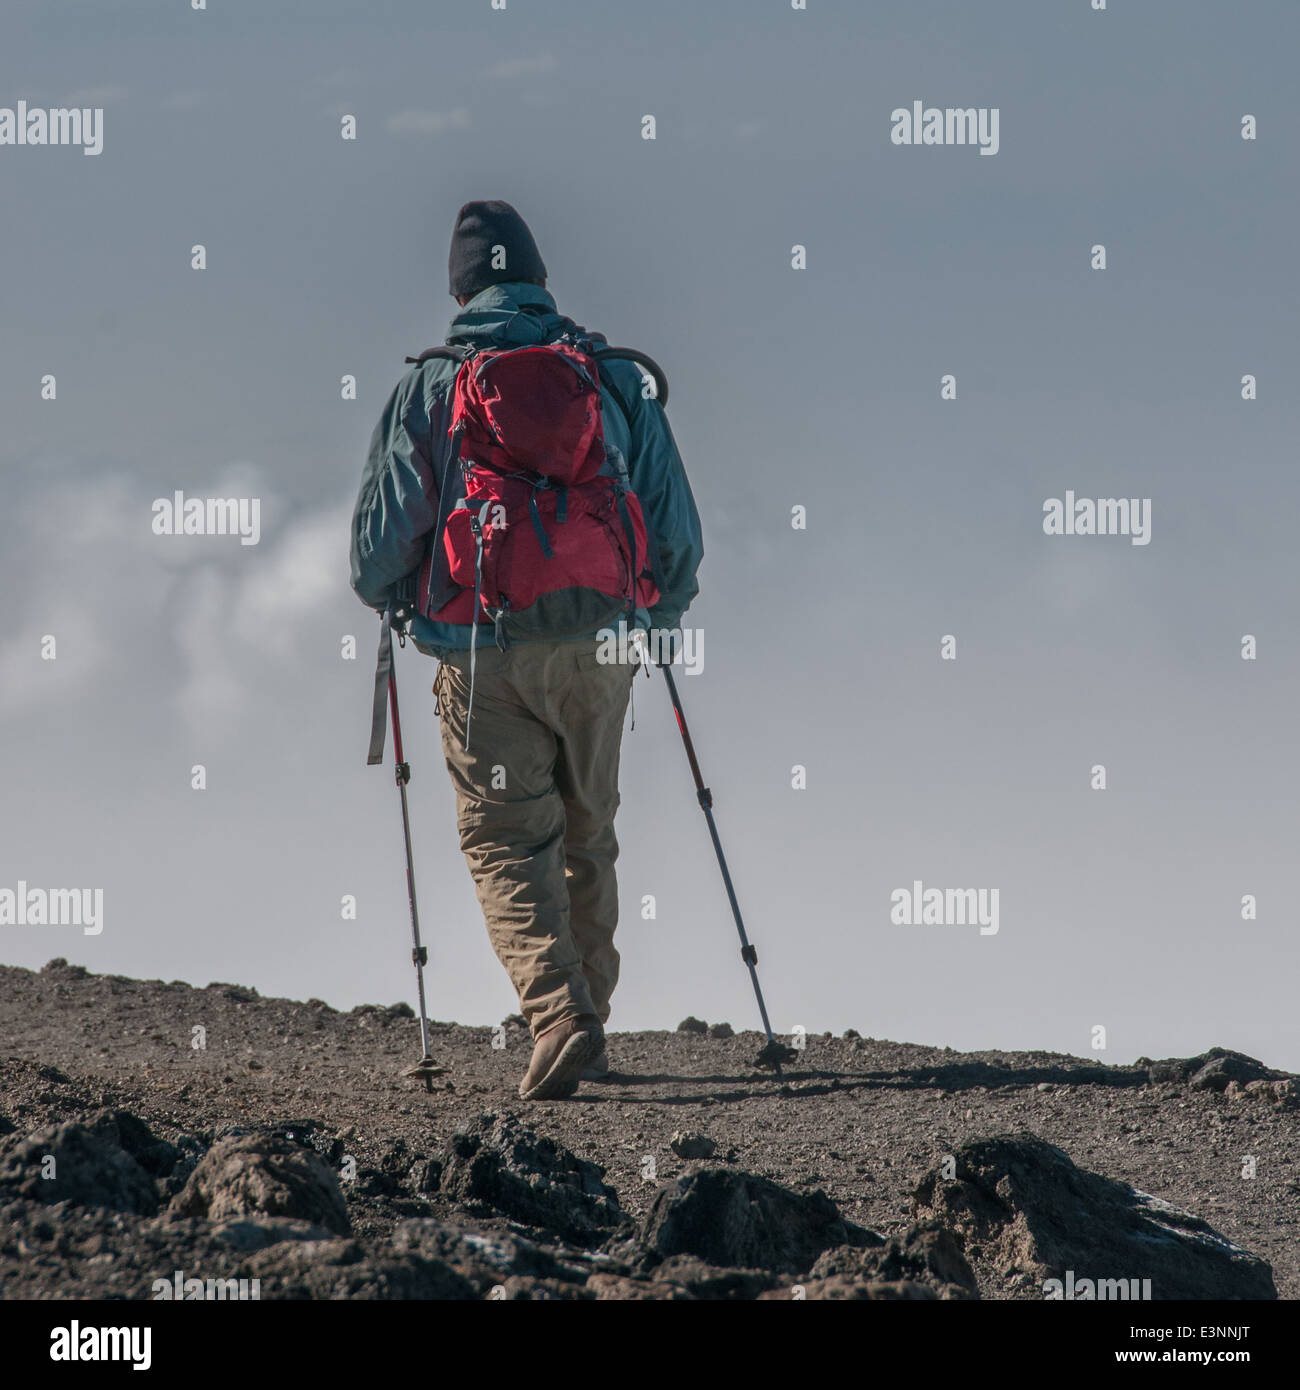 A trekker heading back along the crater rim to Stella Point after successfully summiting Kilimanjaro - Stock Image